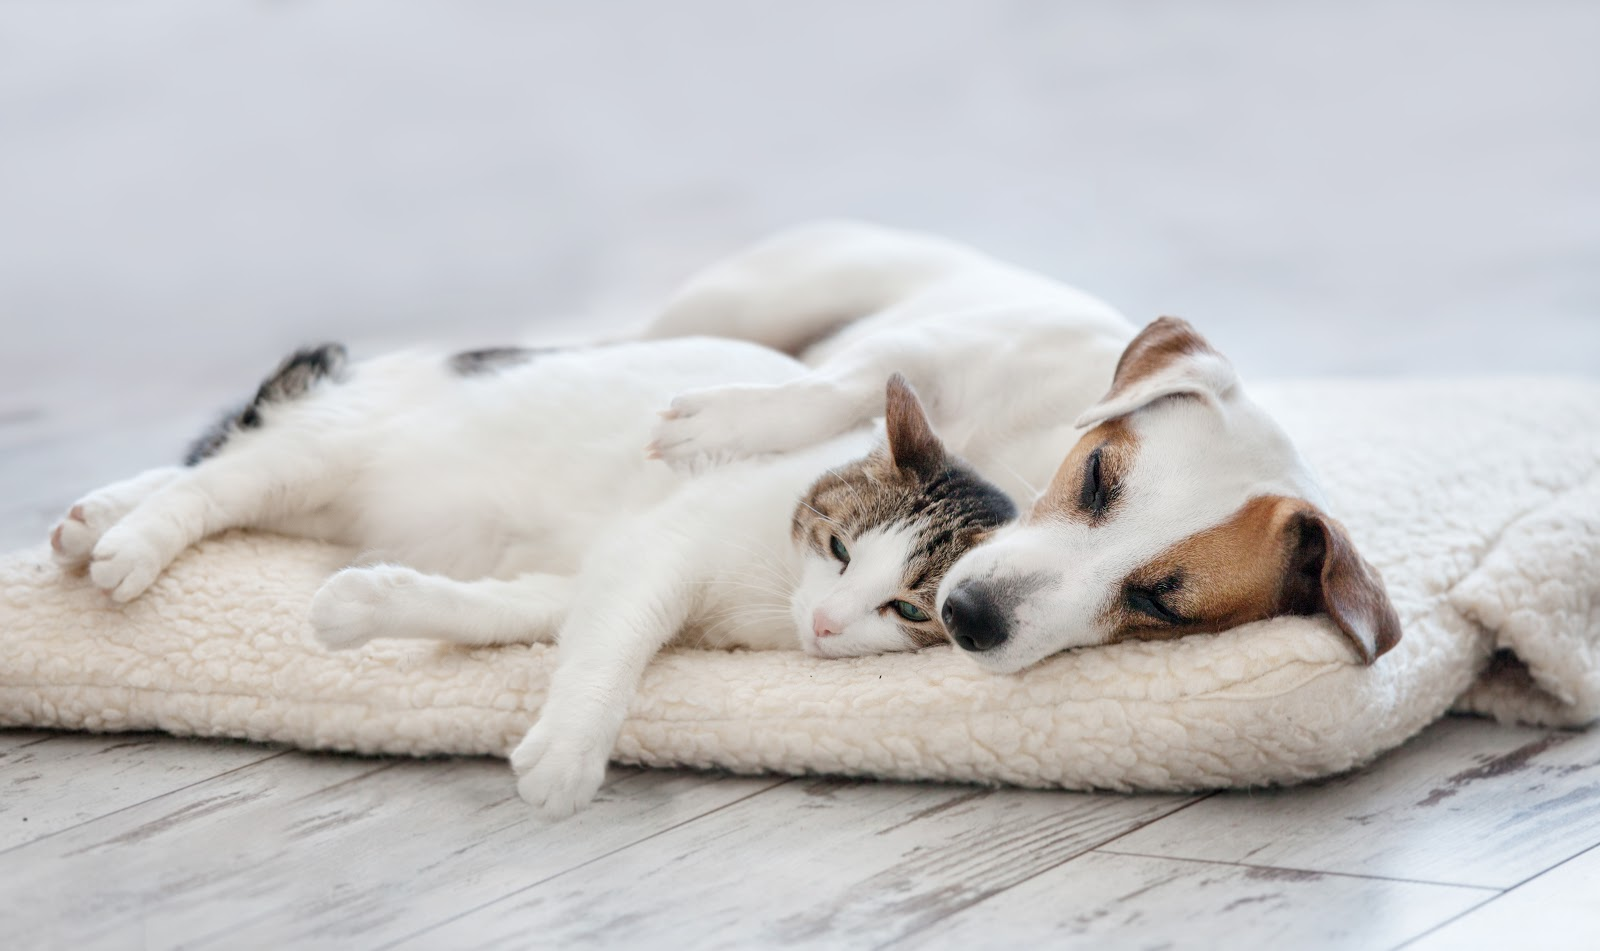 A cat and dog cuddling on bed